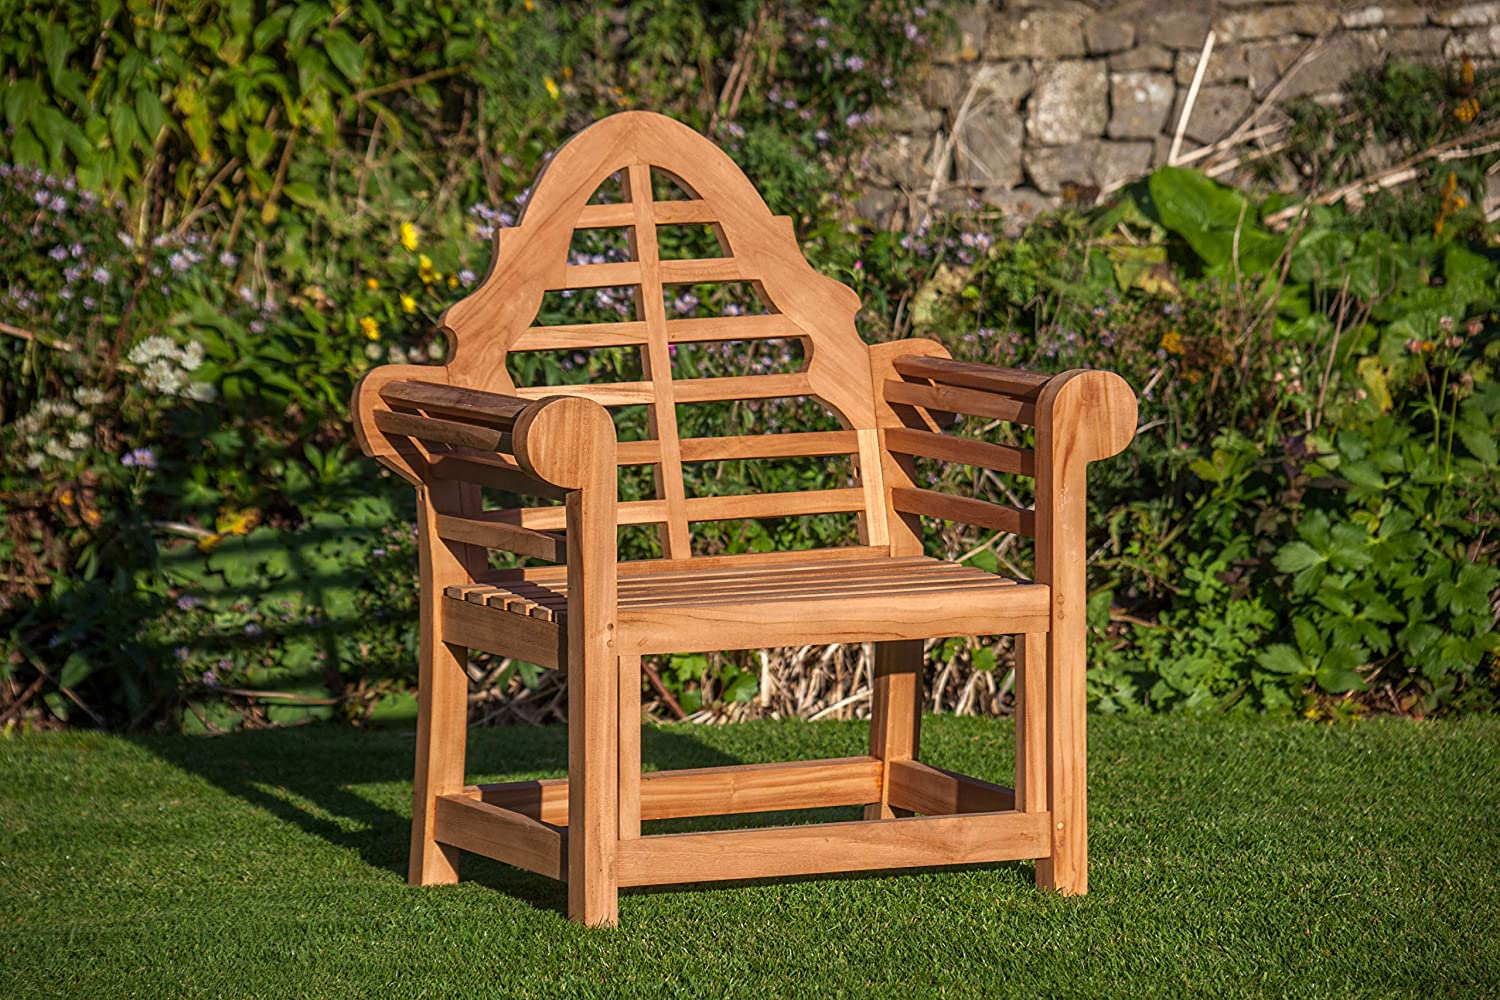 THE SISSINGHURST LUTYENS TEAK GARDEN CHAIR